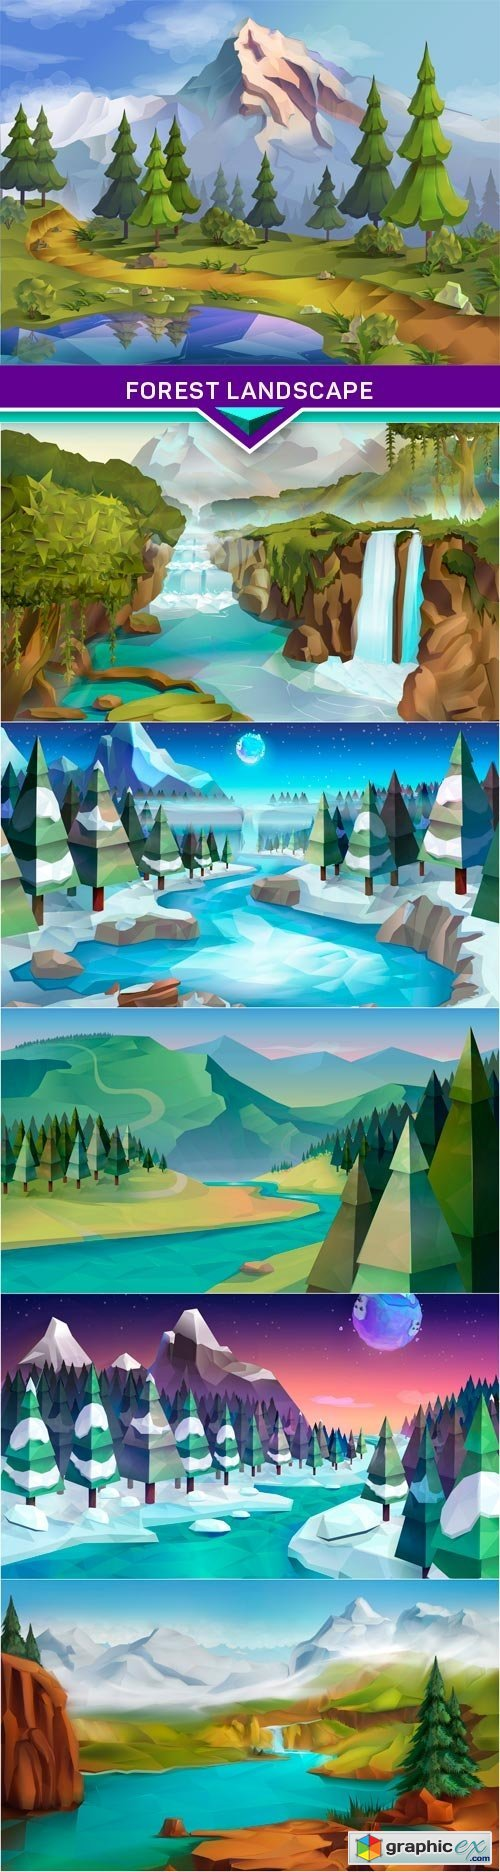 Forest landscape, nature vector background 6x EPS